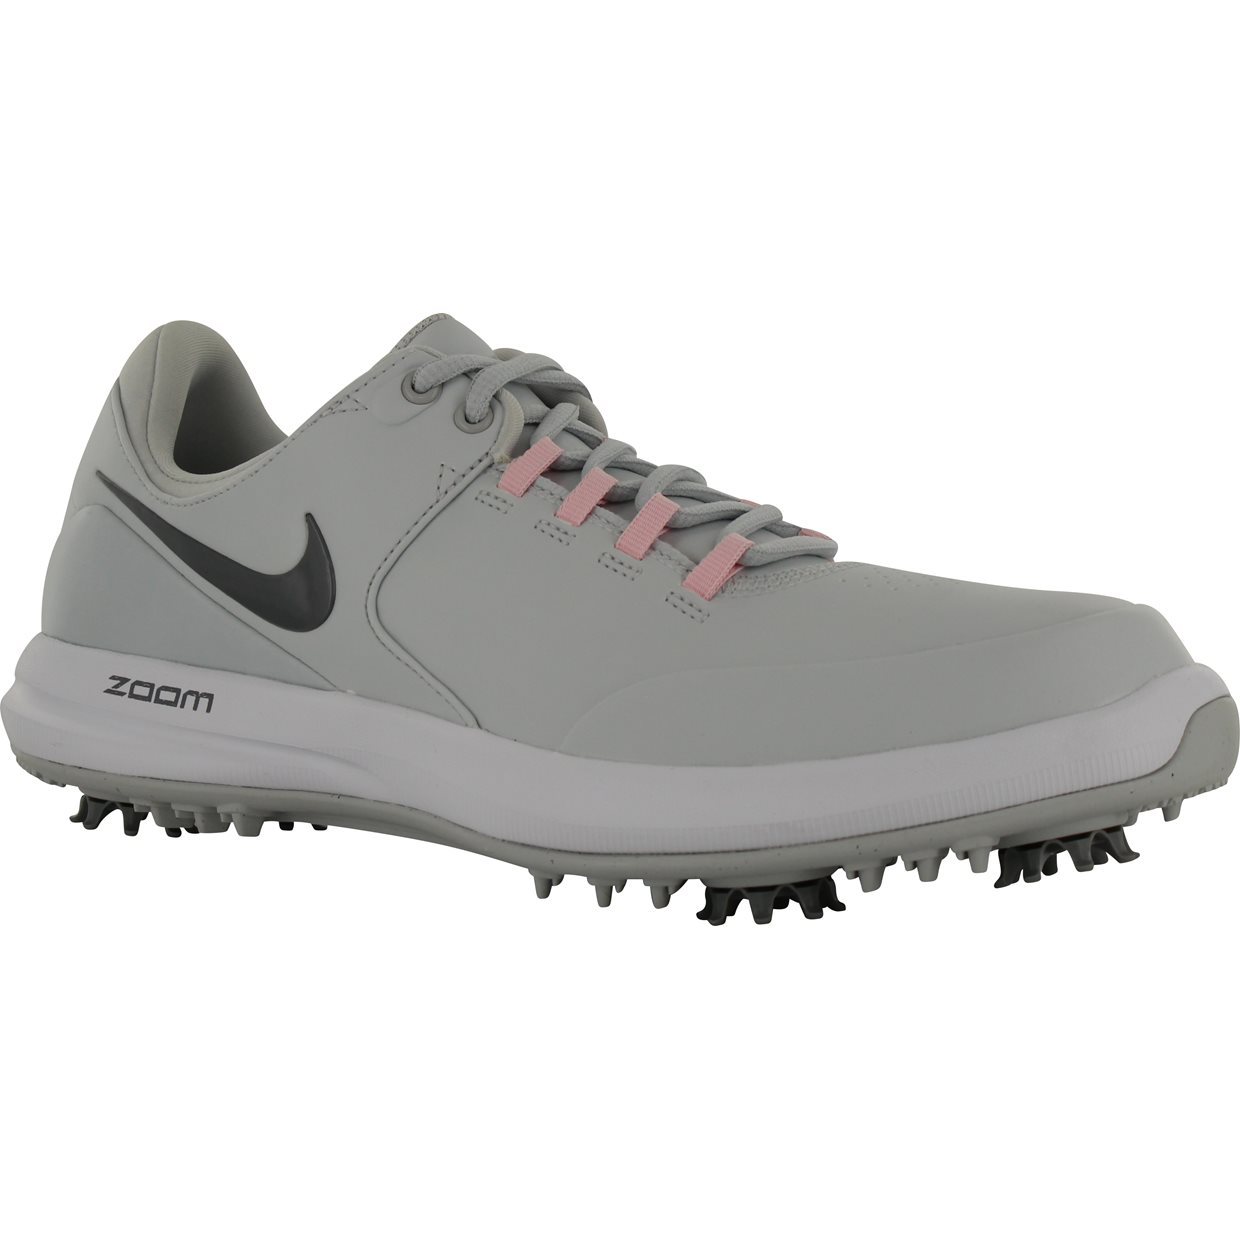 finest selection 54b73 fc1c3 Nike Air Zoom Accurate Golf Shoe Shoes. Drag 360 Left or Right to View.  Alternate Product Image View 1 ...